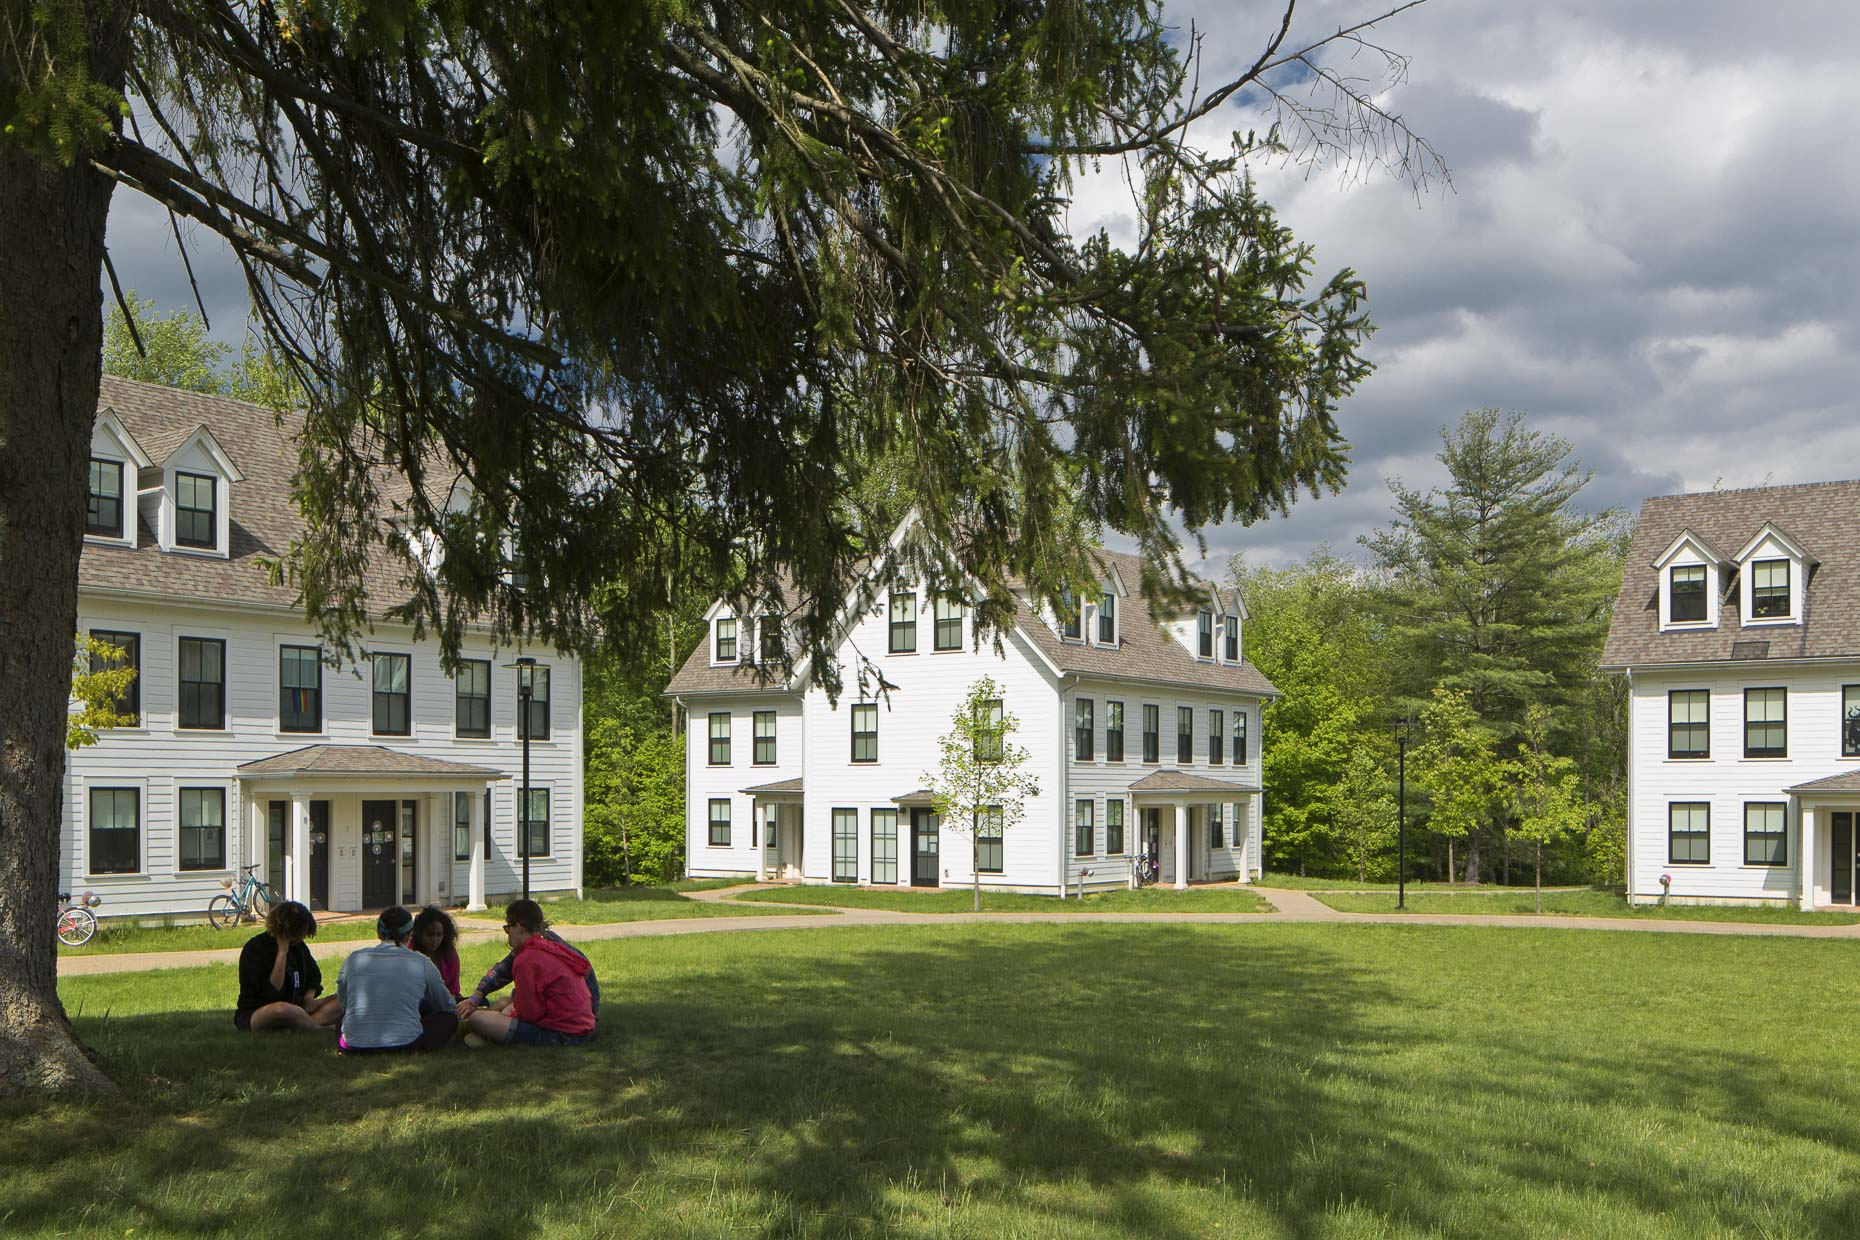 North Campus Housing at Kenyon College photographed by Brad Feinknopf based in Columbus, Ohio